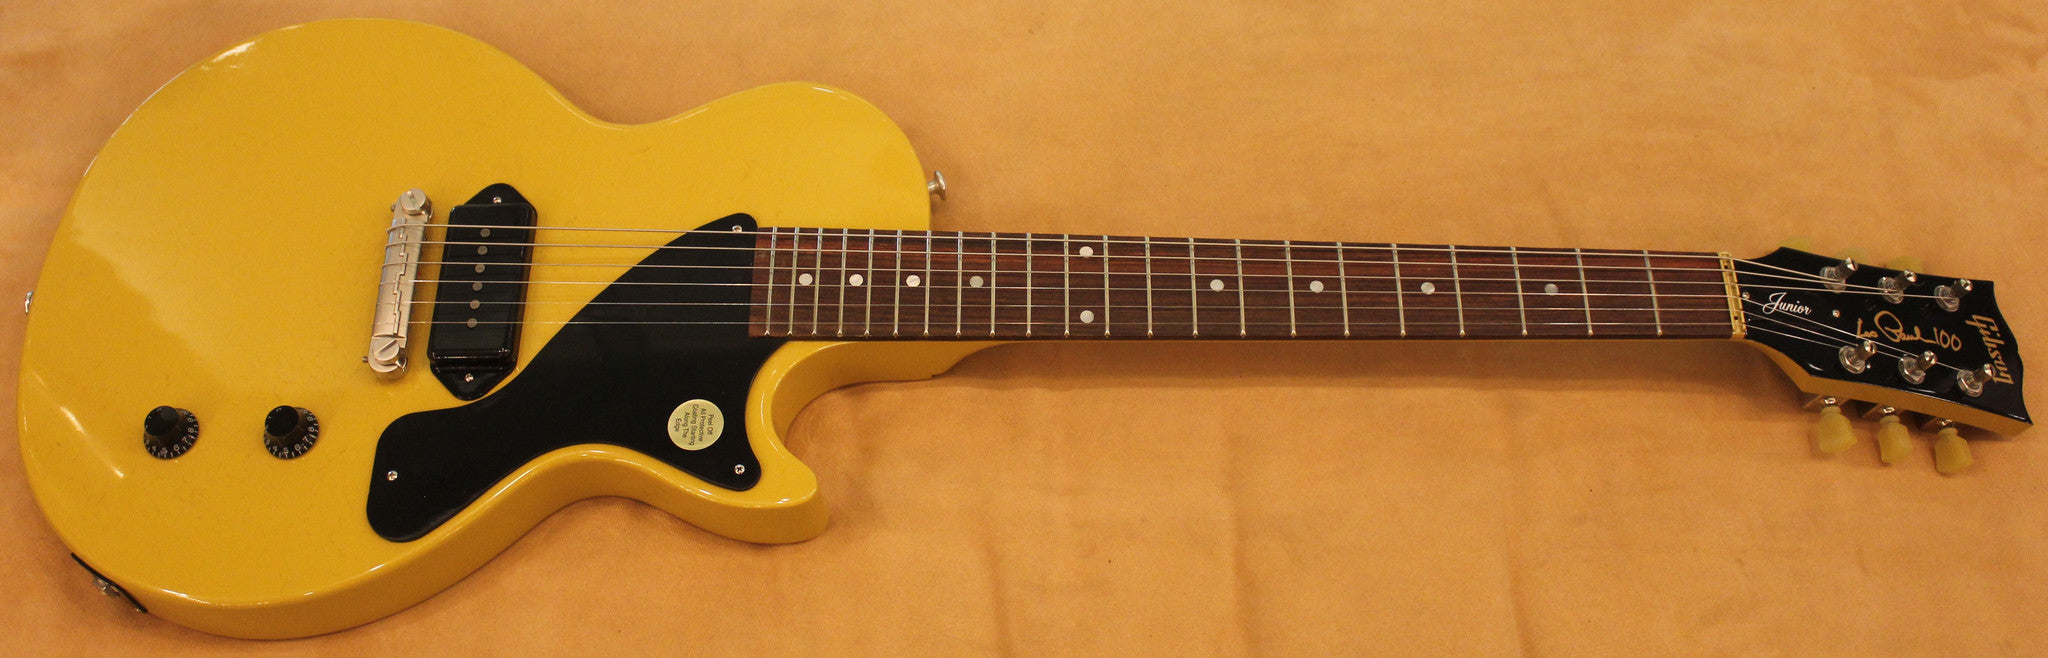 gibson-les-paul-junior-2015-gloss-yellow-lpjr15gysn1-sn-150038717